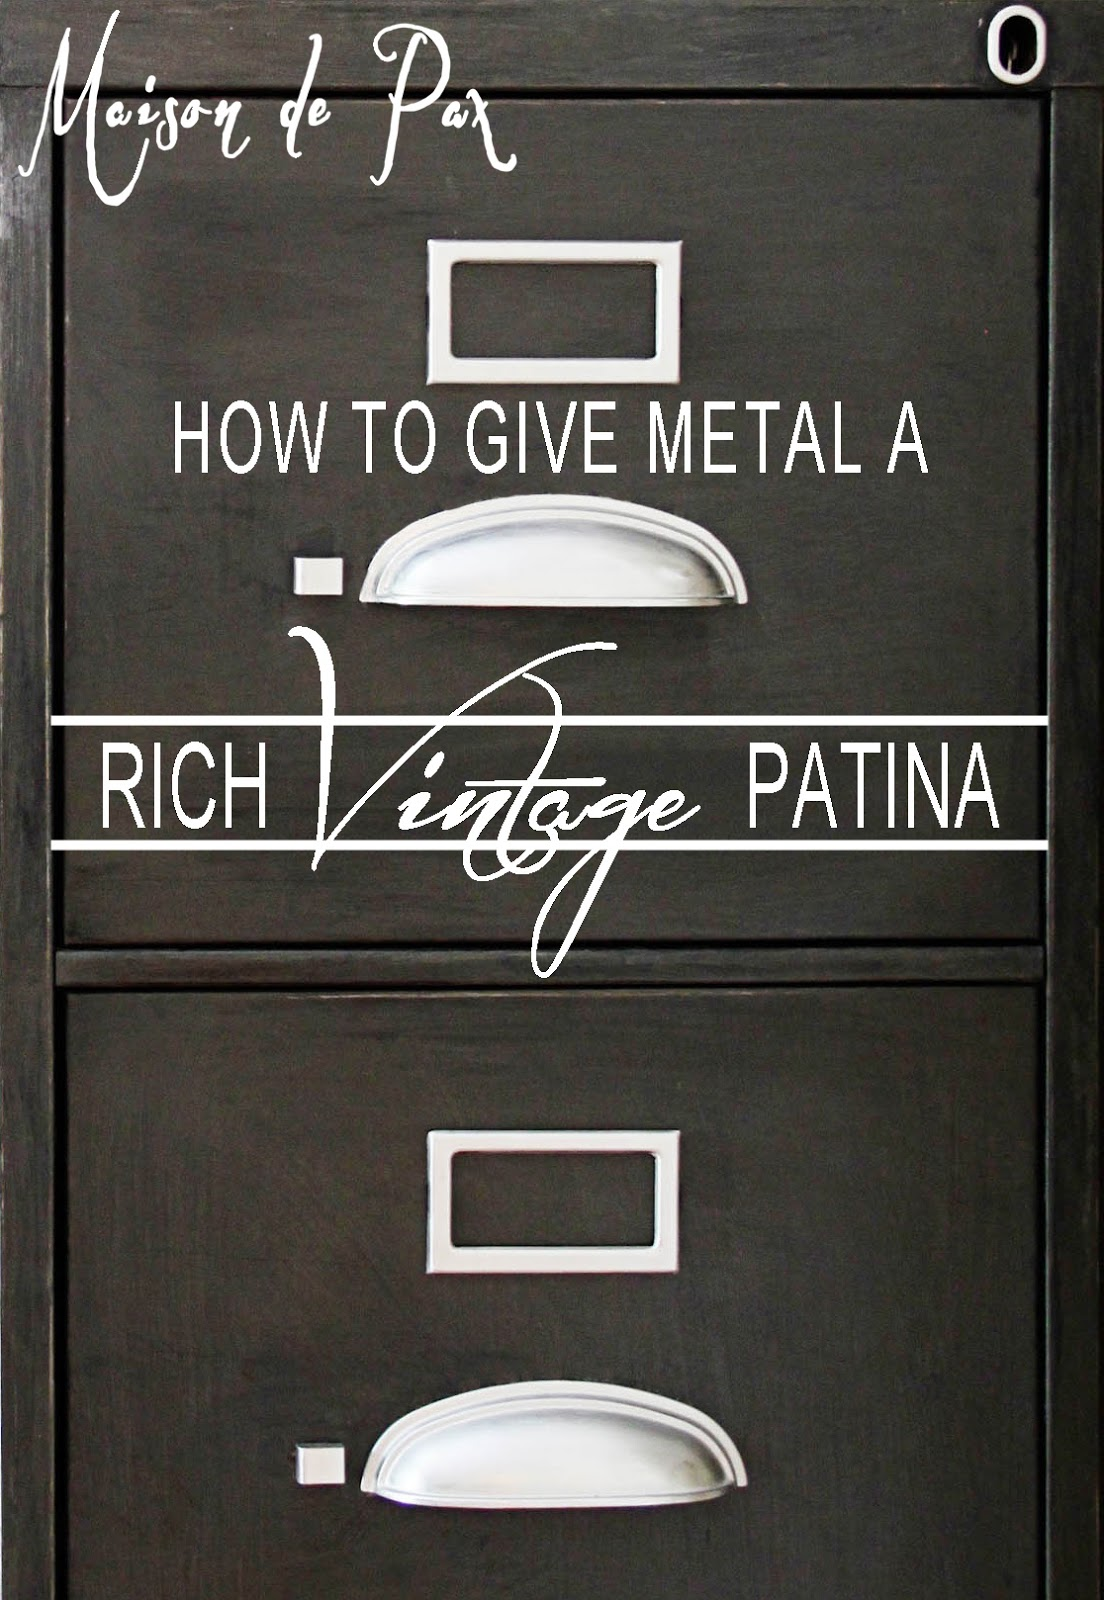 Old Metal Cabinets How To Give Metal A Rich Vintage Patina Maison De Pax